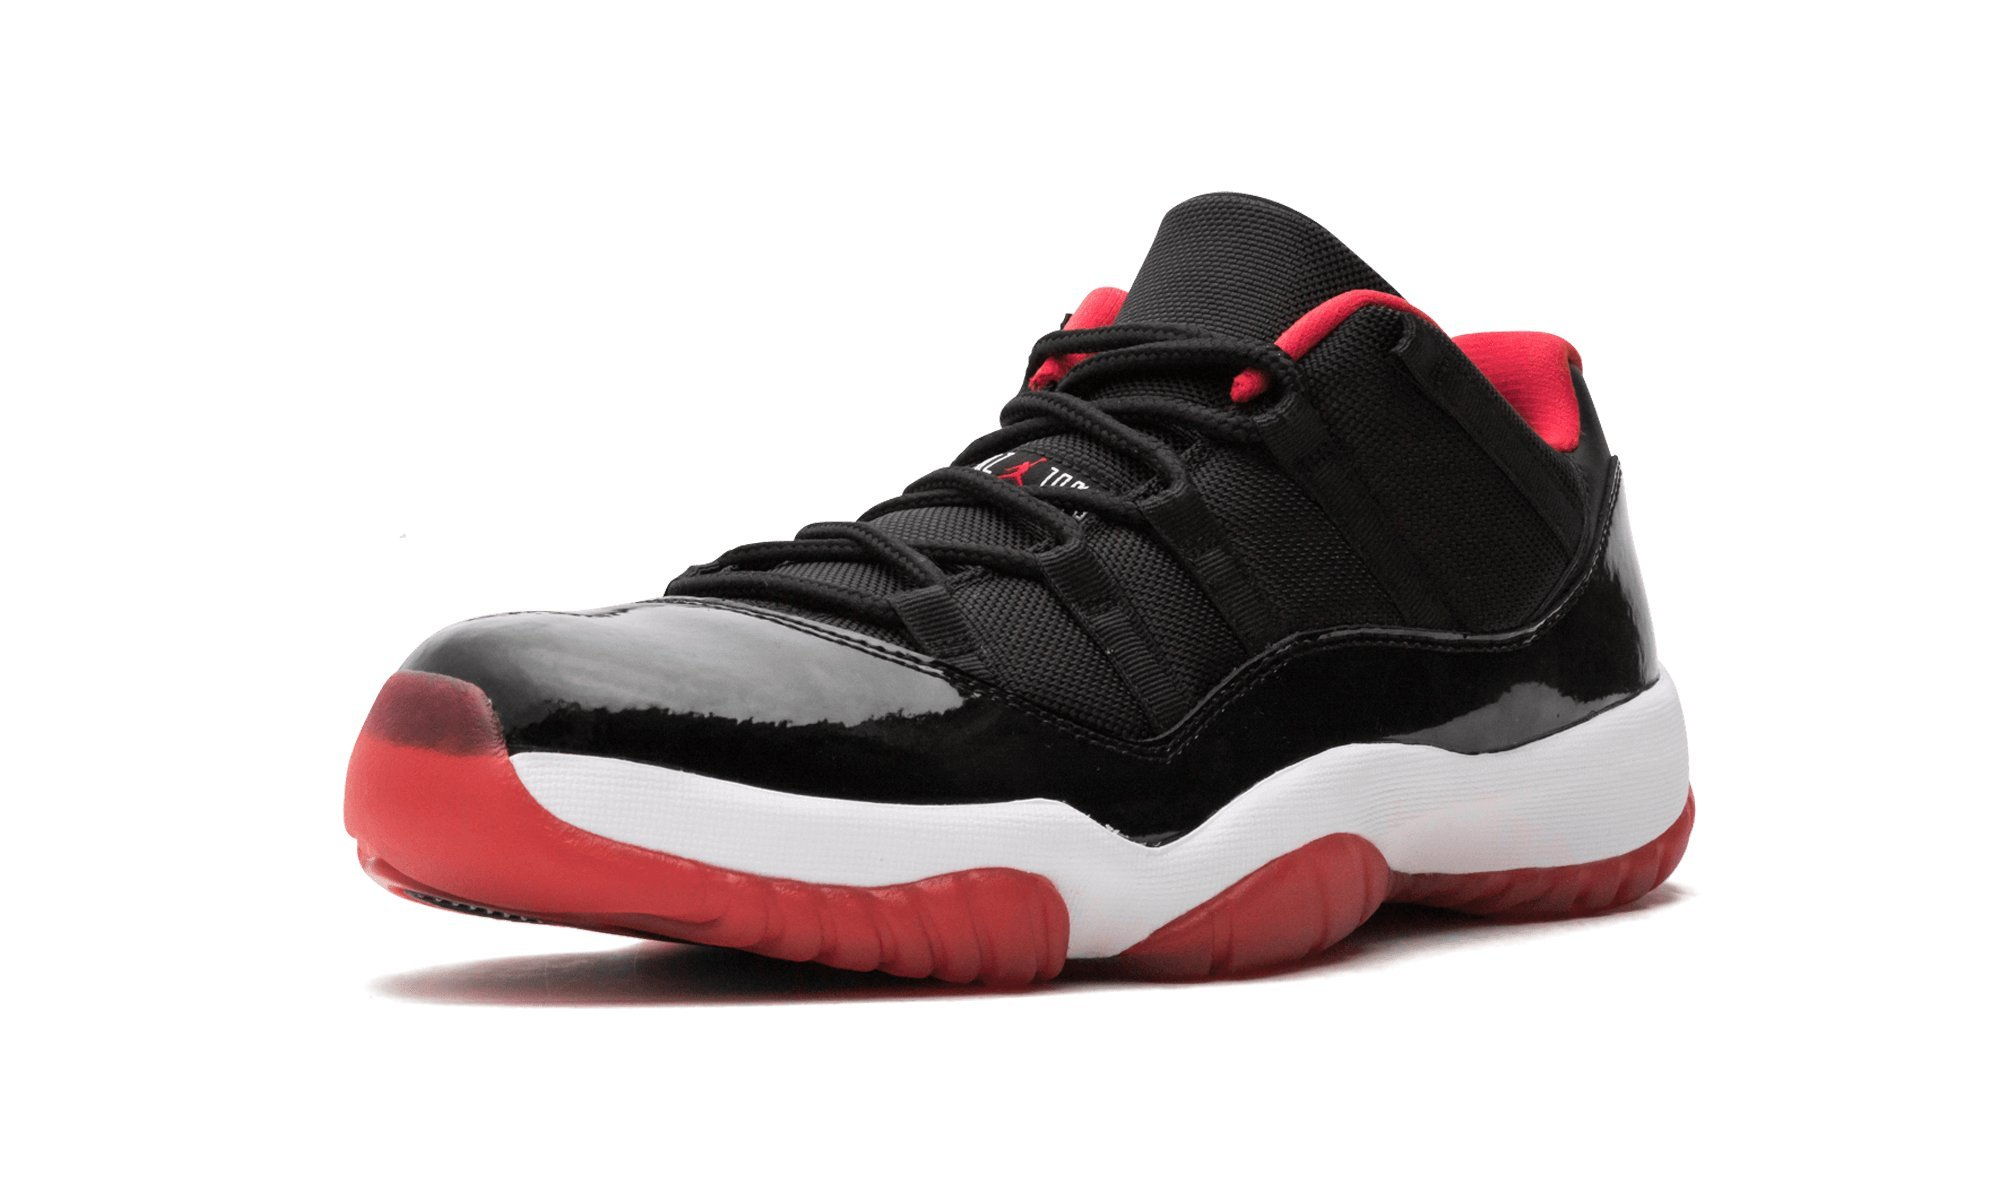 huge discount 778e9 e72d2 Galleon - Air Jordan 11 Retro Low